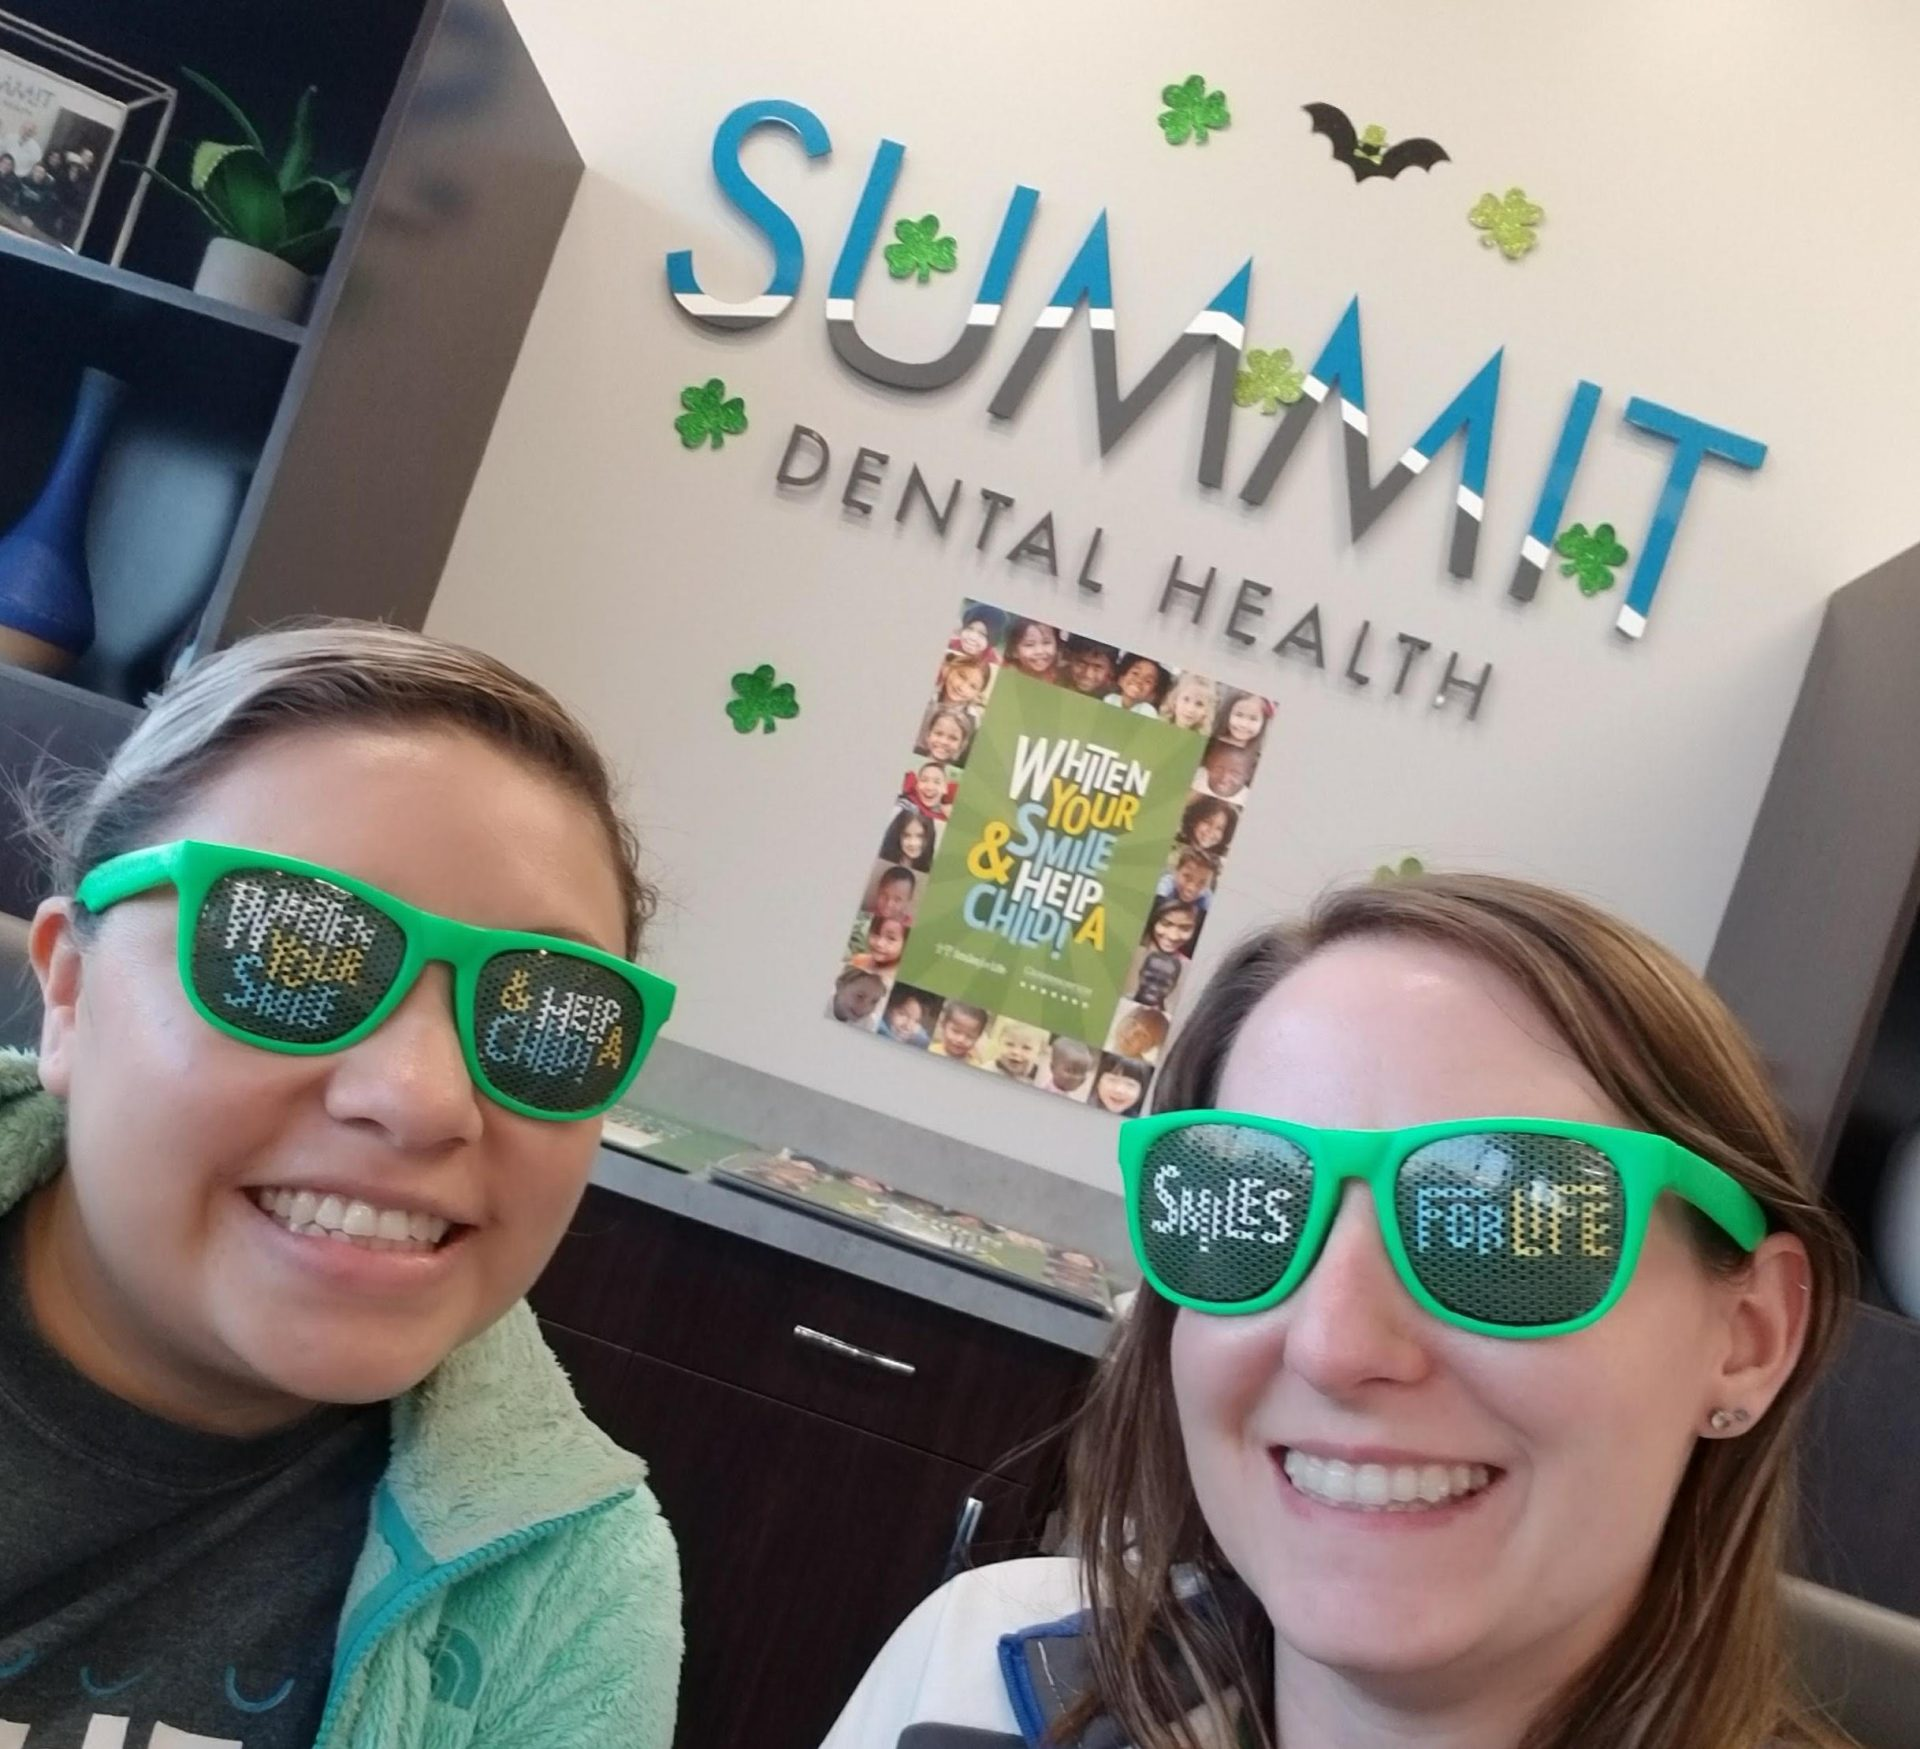 two women wearing green sunglasses smile in the foreground; behind them is a Summit Dental Health sign